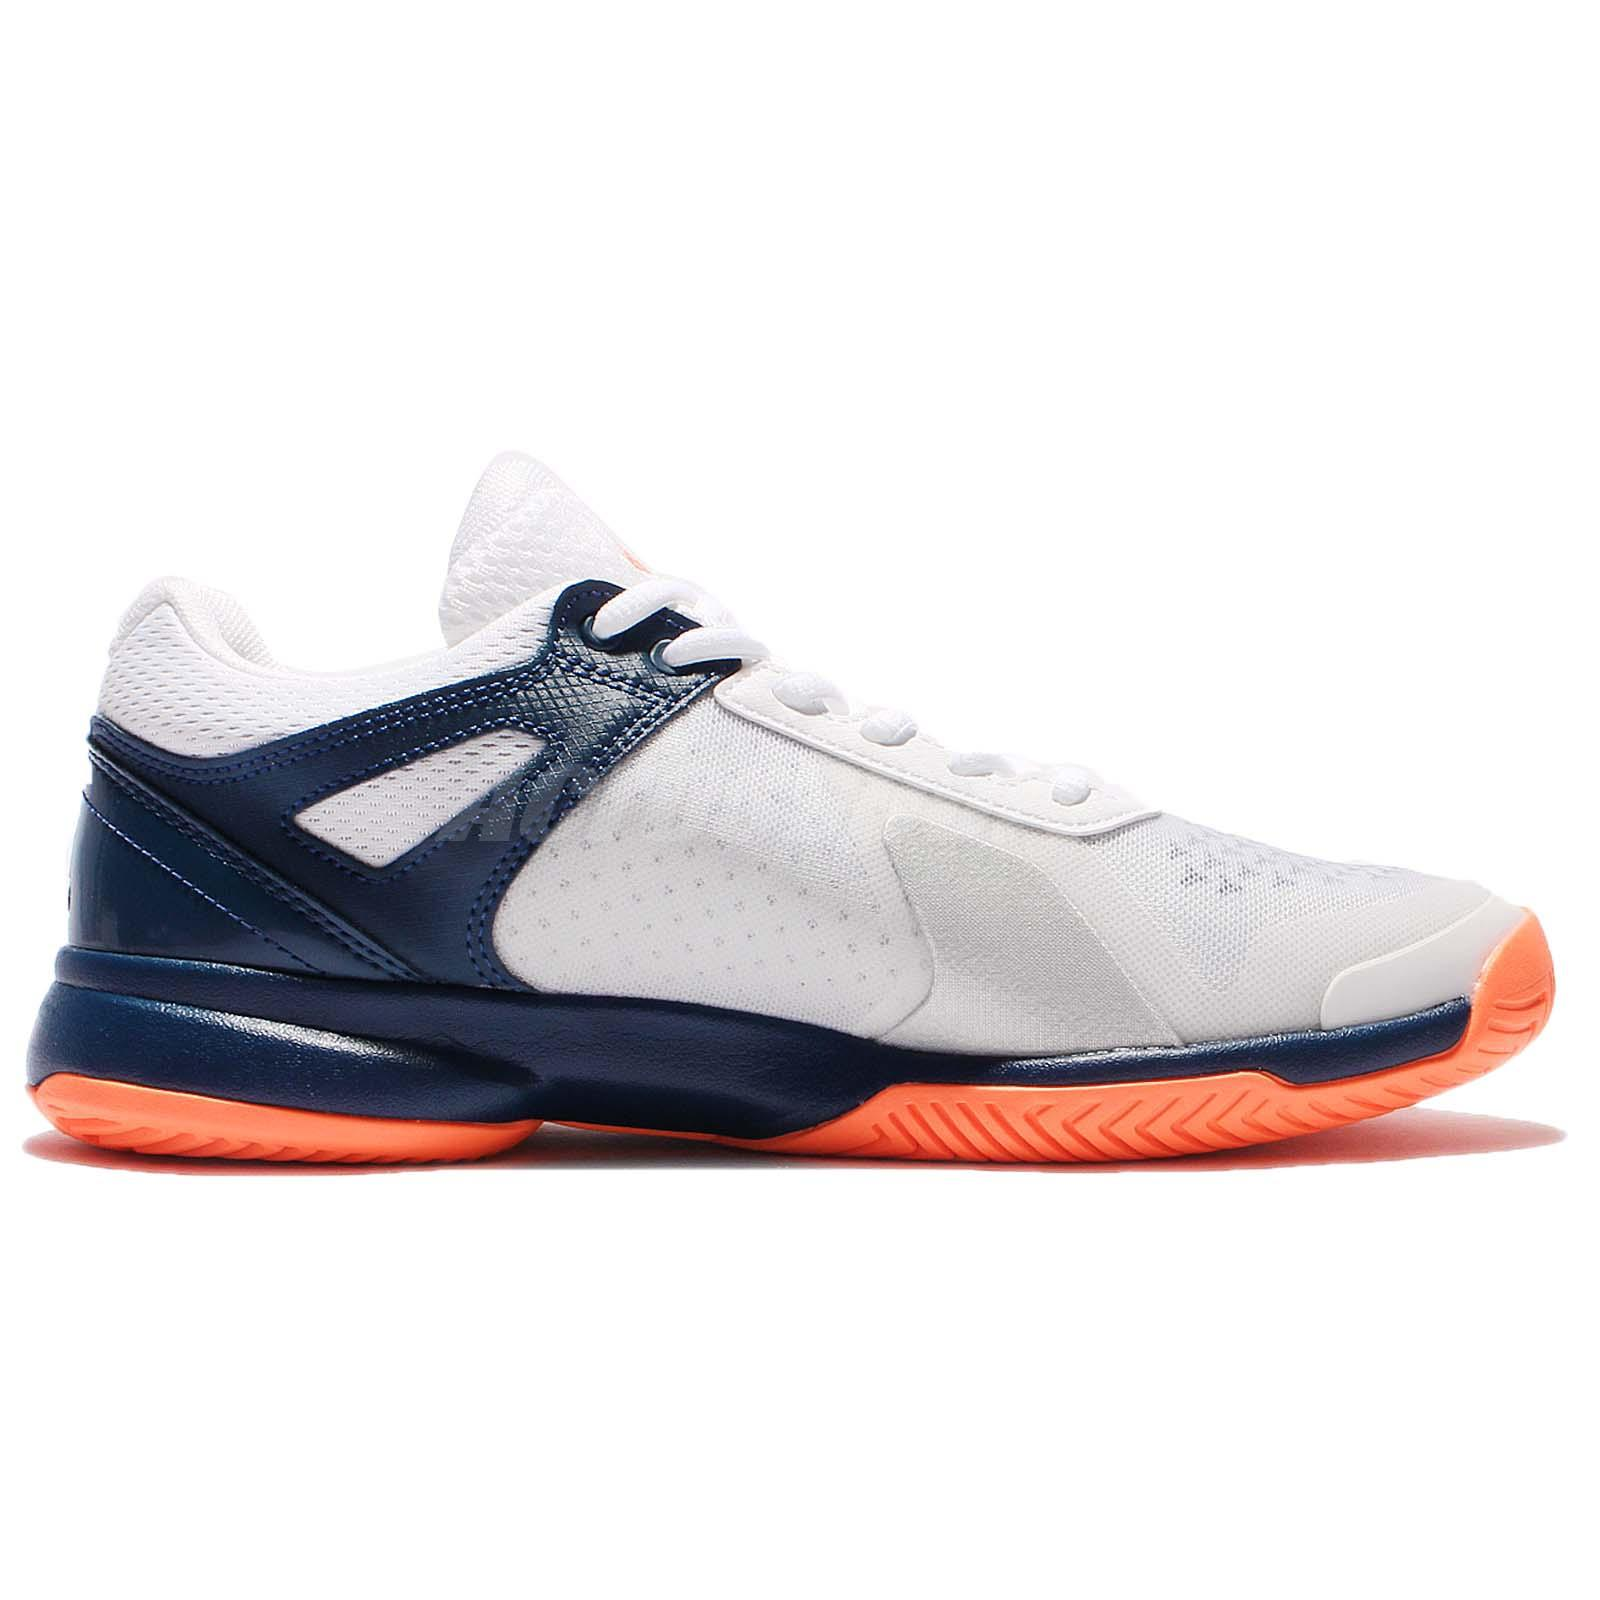 first rate 6e8ad f9206 adidas Adizero Court Navy White Orange Men Tennis Shoes Sneakers Trainers  BA9085  eBay